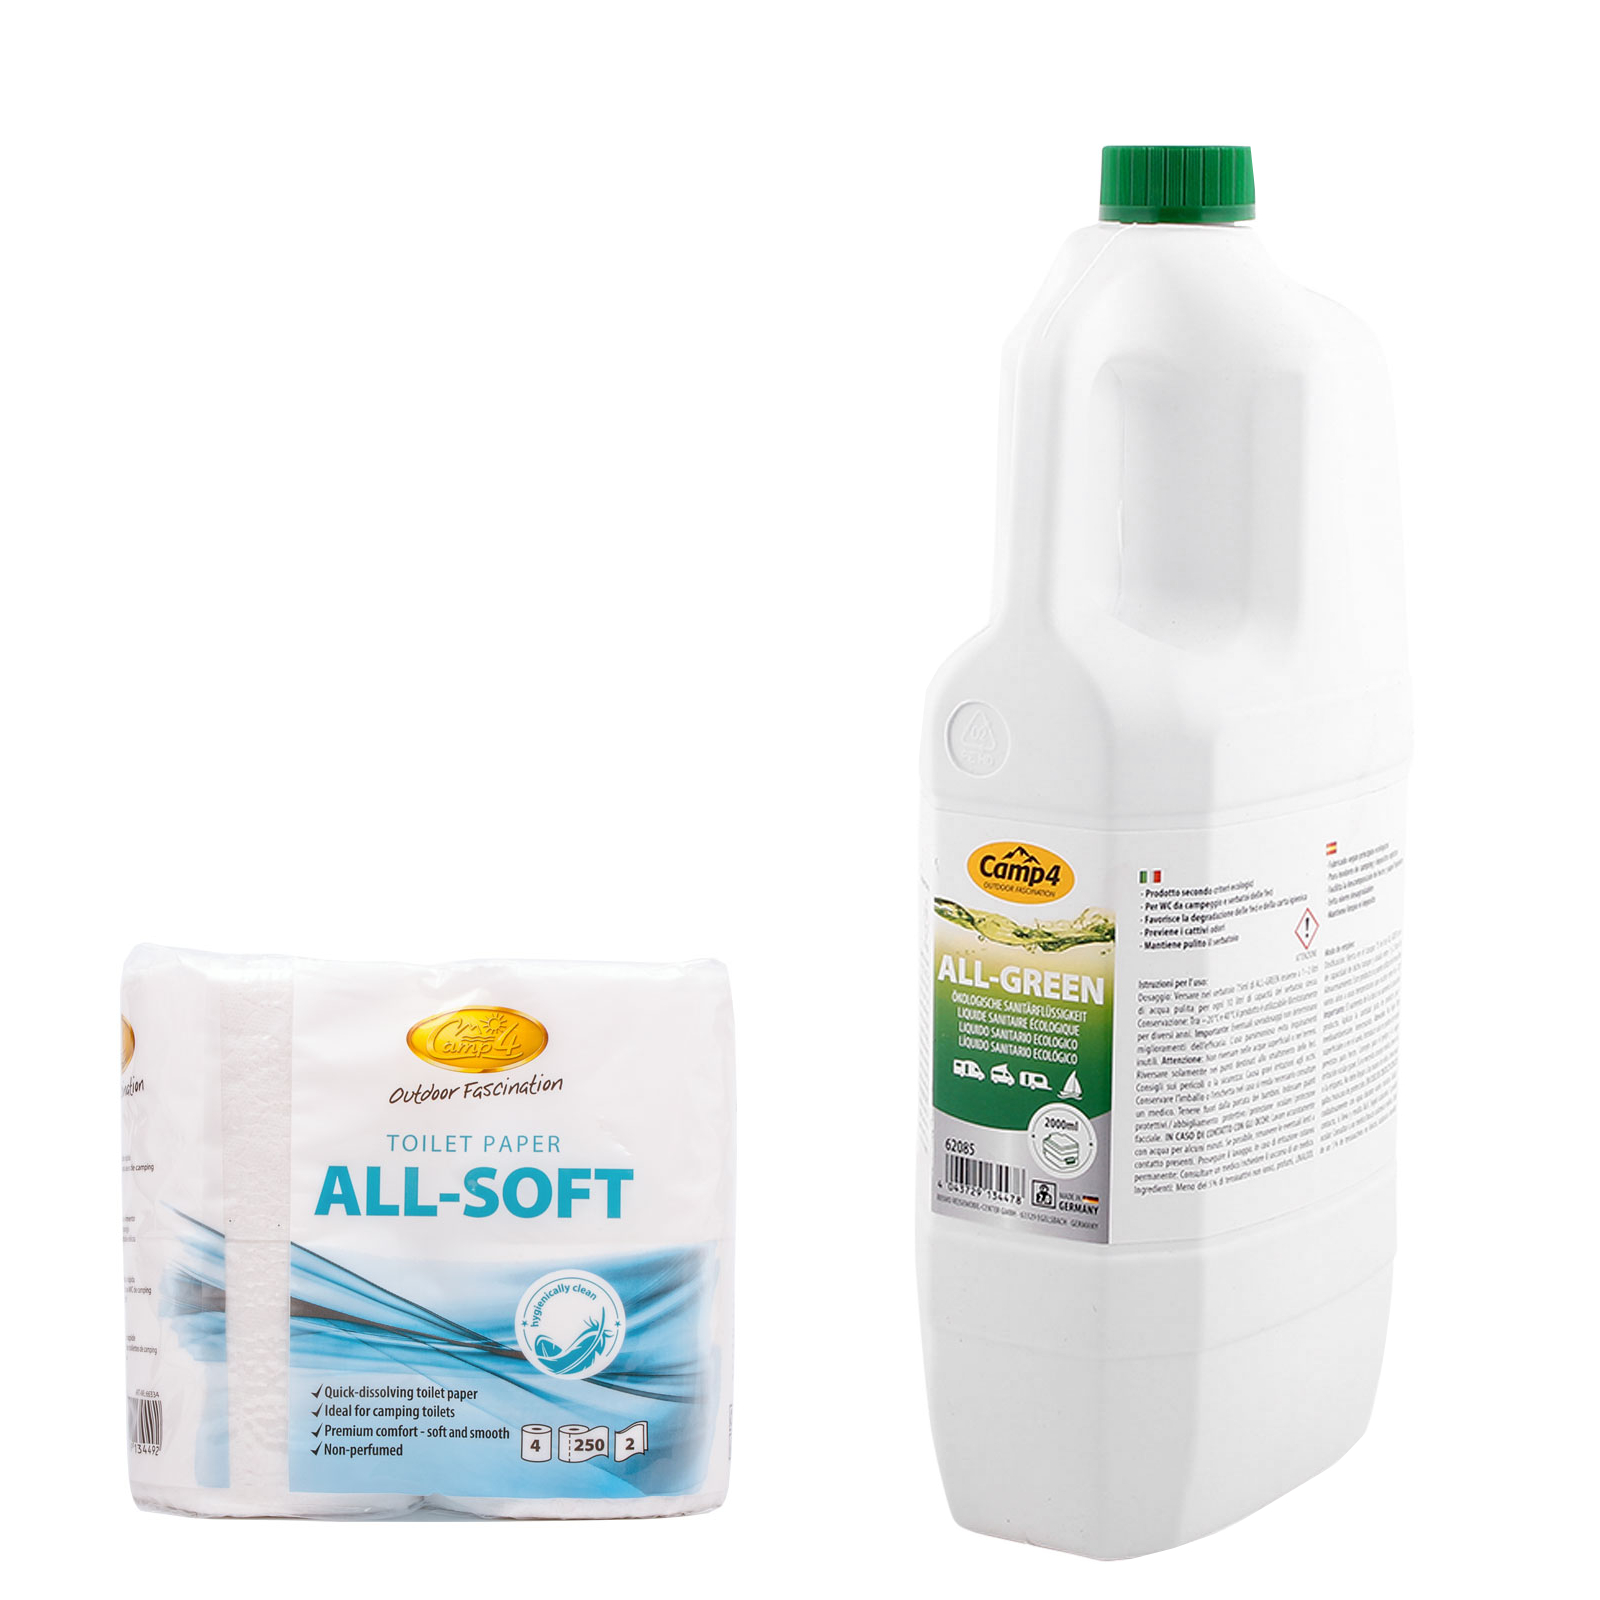 Camp4 All Green Öko Toilettenflüssigkeit 2 Ltr, Abwassertank + Allsoft